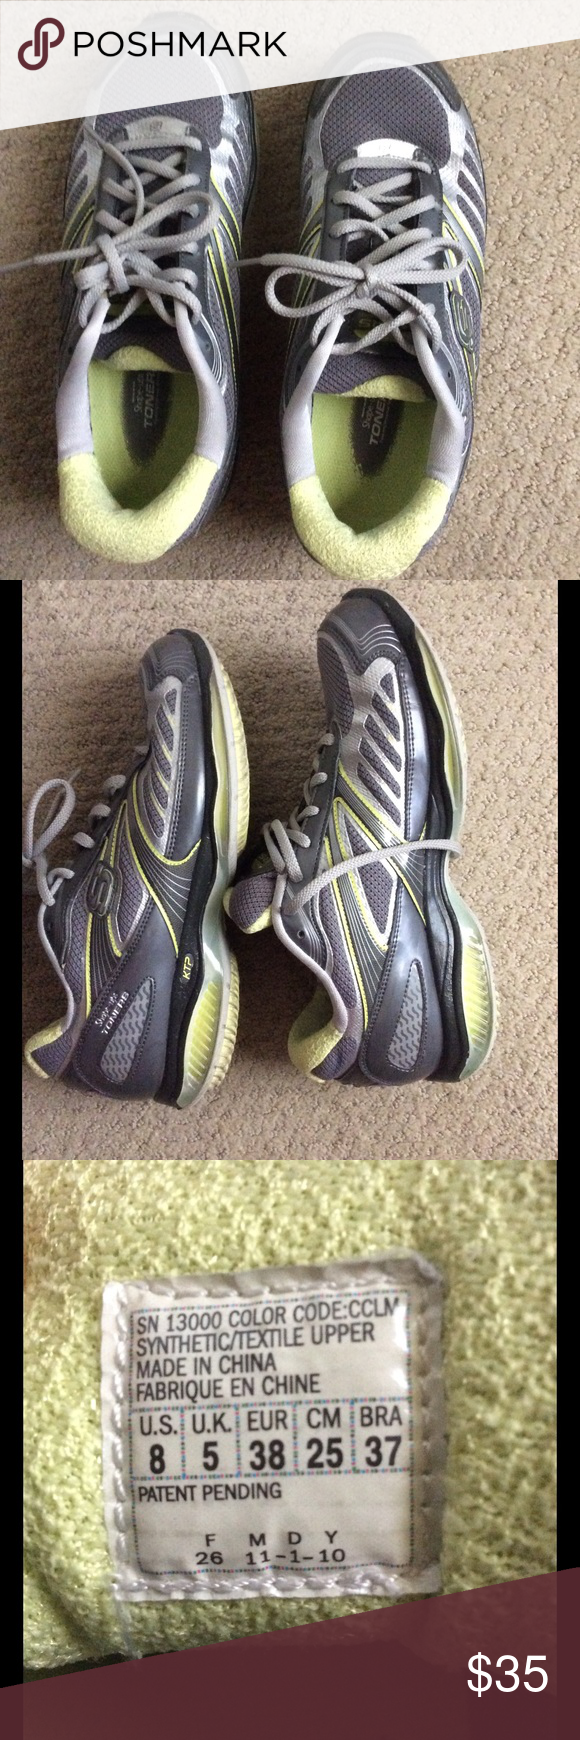 Skechers shape-up toners sneakers Great preowned shoes in good shape. Very comfortable and fits great. Gray and lime green color size 8 Skechers Shoes Sneakers